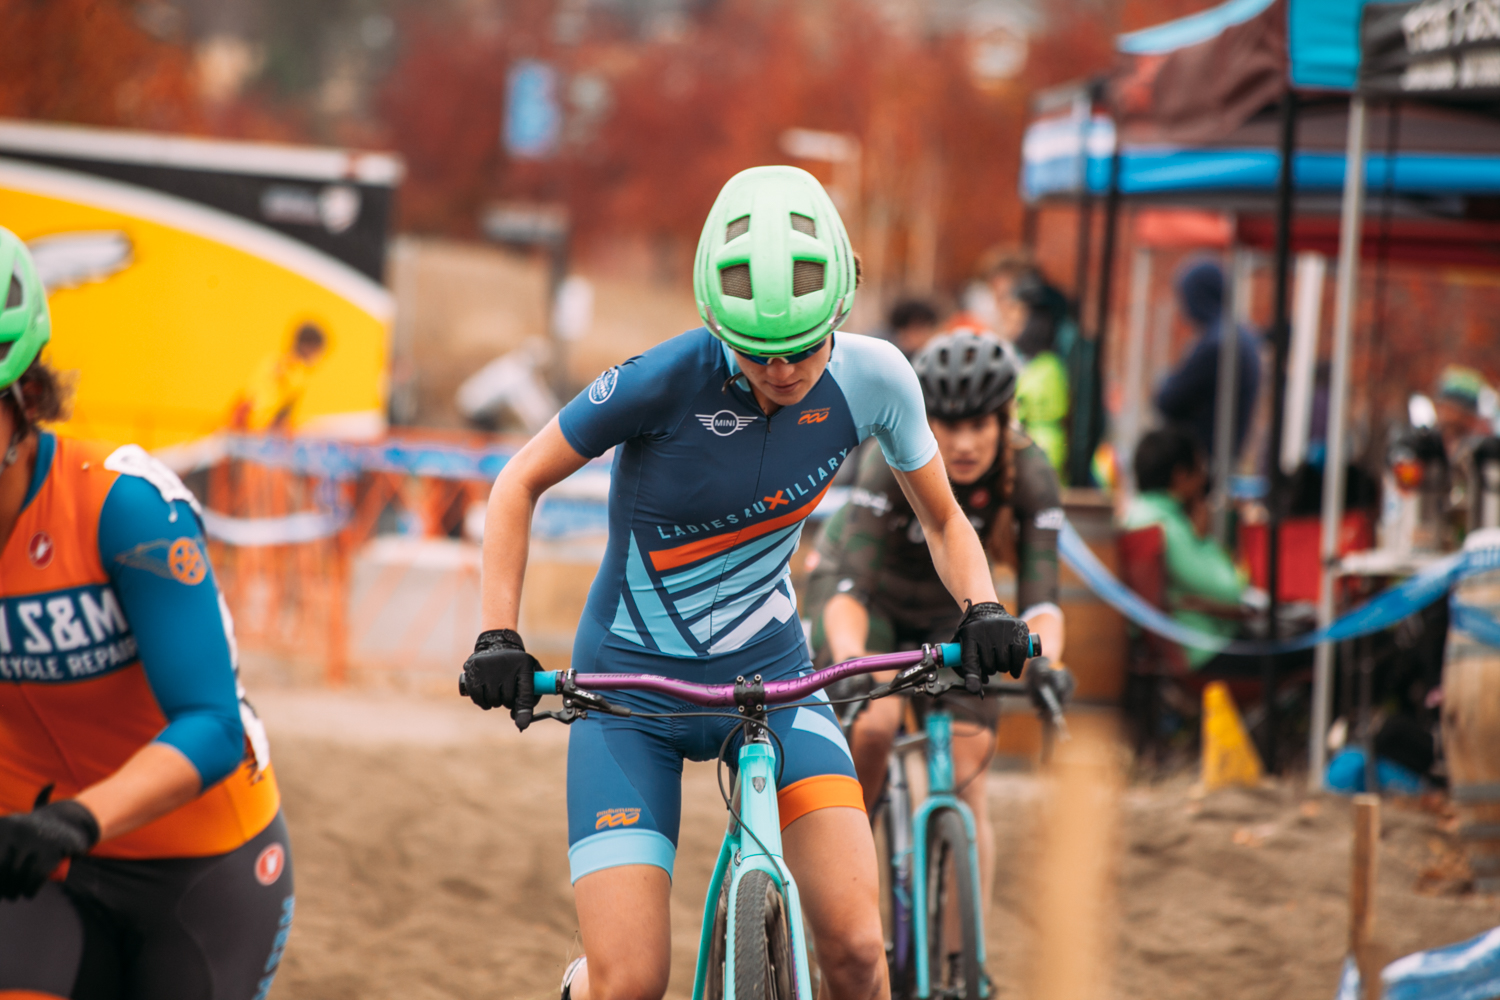 Cyclocross18_CCCX-Bend-Day1-38-fransencomesalive-2.jpg